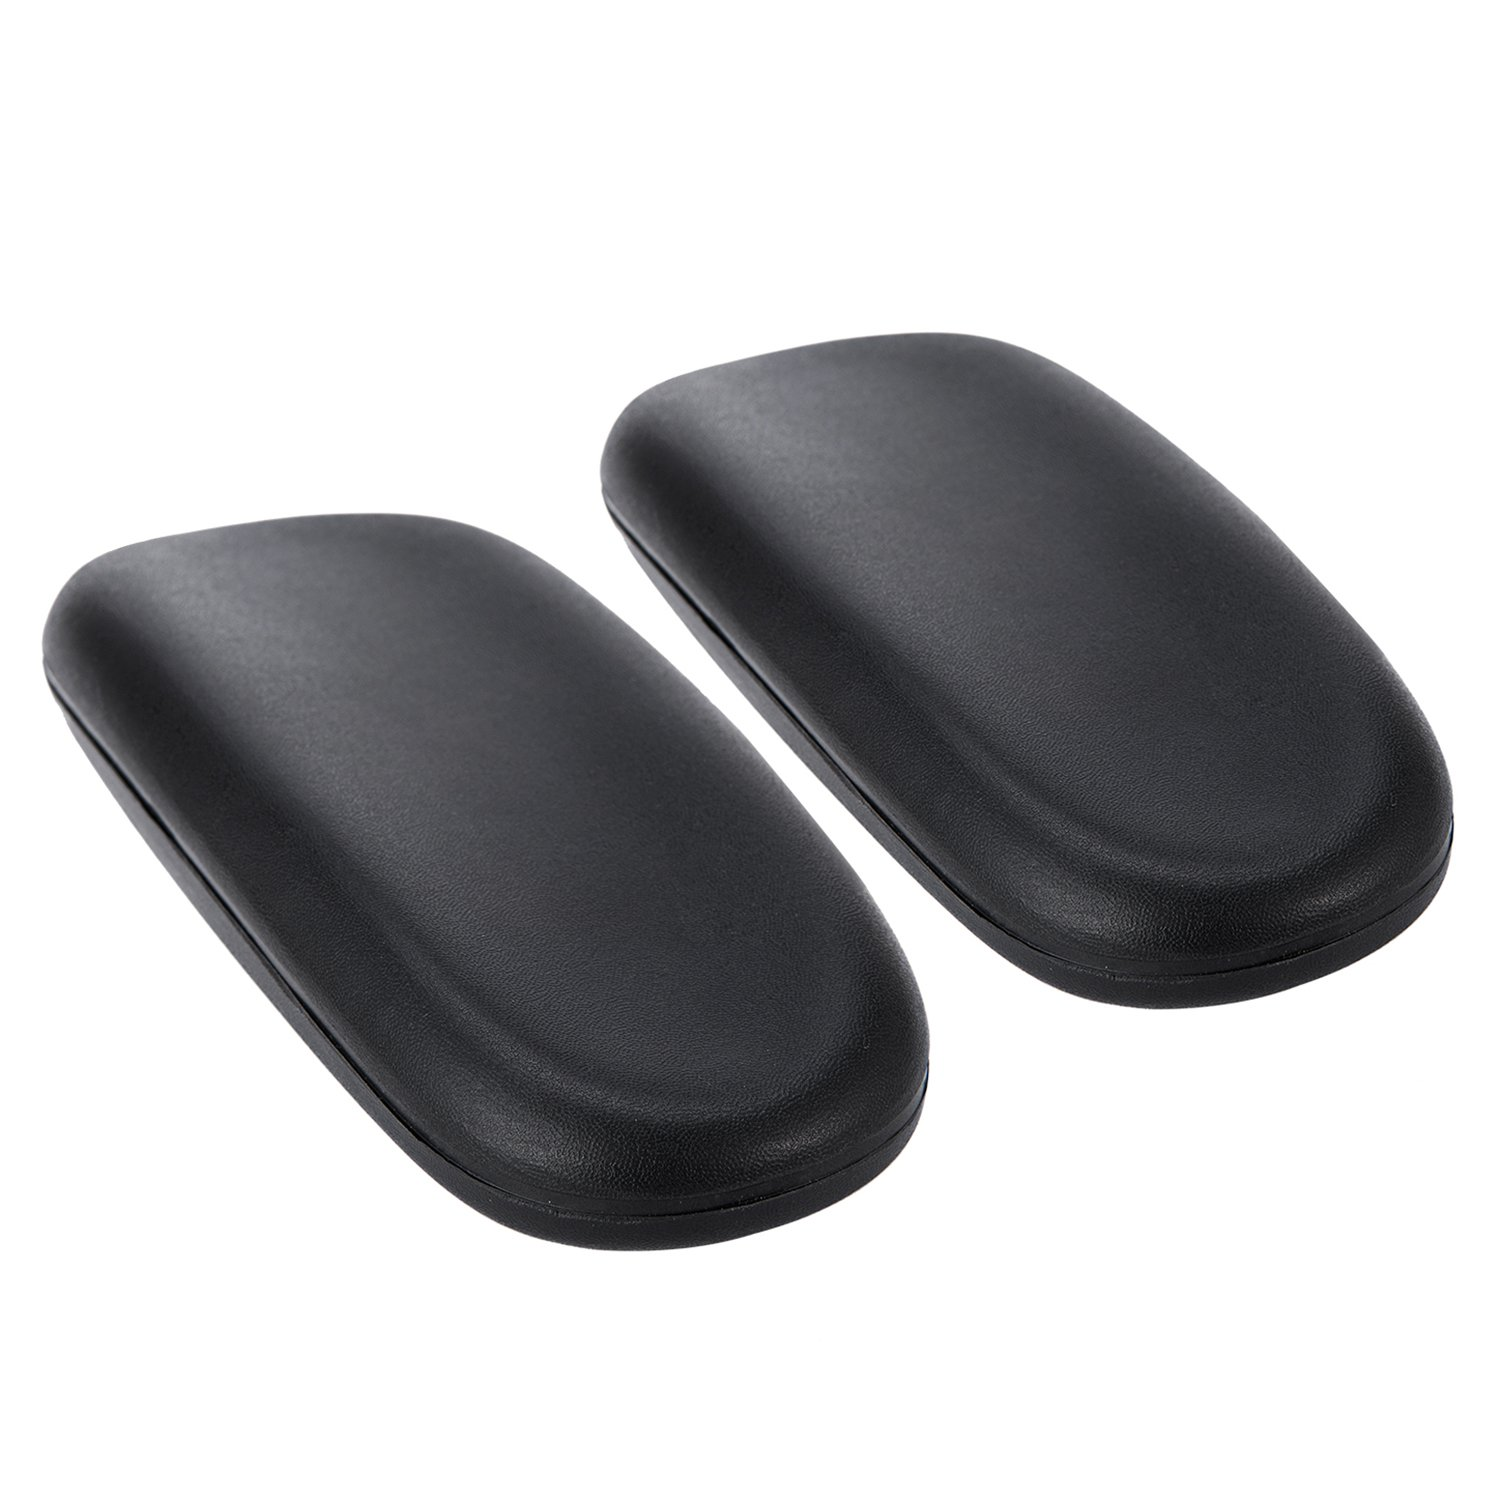 Oak Leaf Office Chair Replacement Arm Pads, Chair Armrest Pads with Sturdy Cushion for Supporting Arms and Elbow, Set of 2